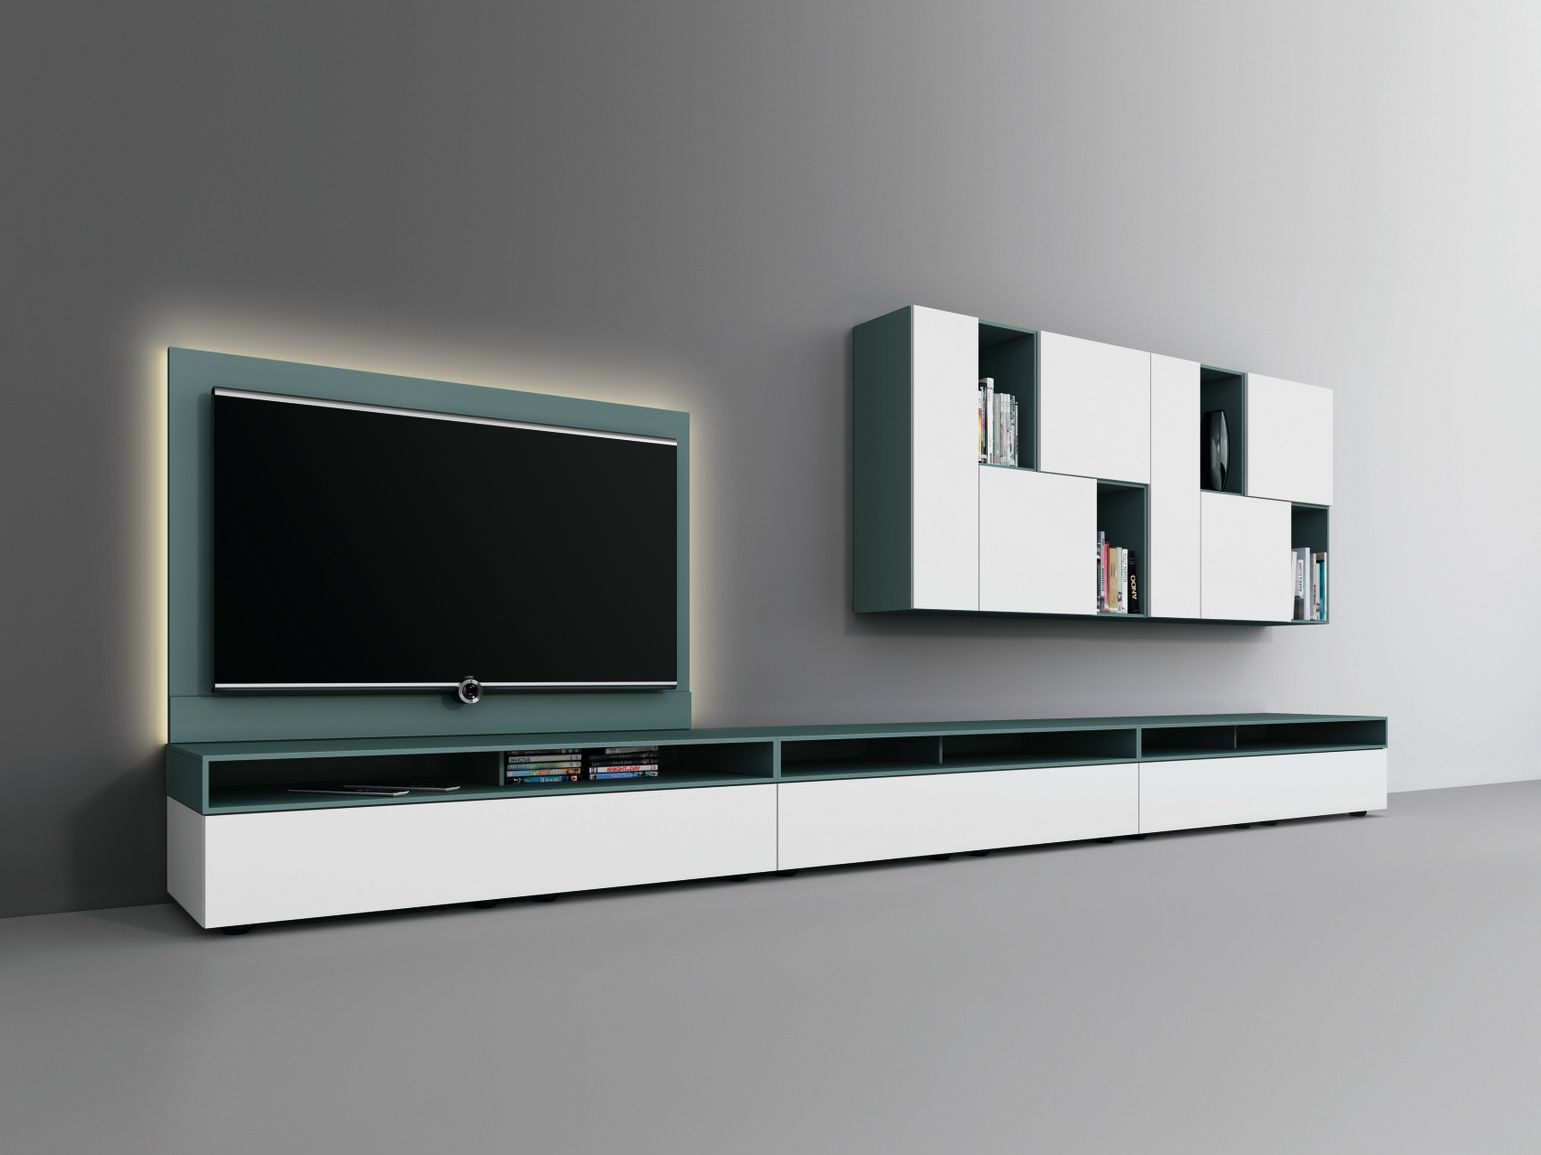 Sectional Suspended Storage Unit Cube Play By Interl Bke Design  # Muebles Saskia Horario